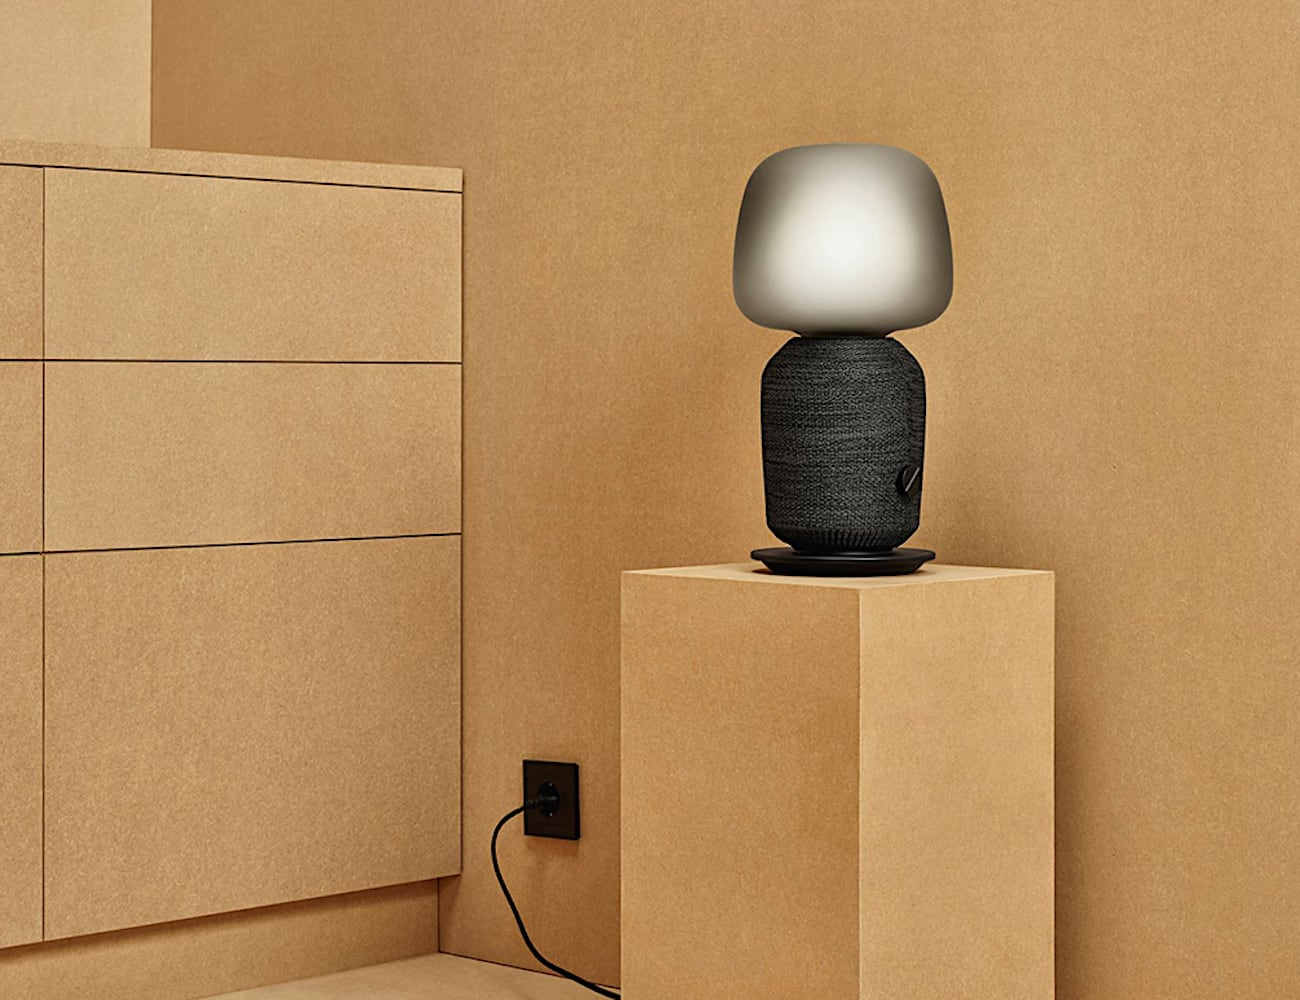 This Table Lamp Wi Fi Speaker Maximizes Your Minimalist